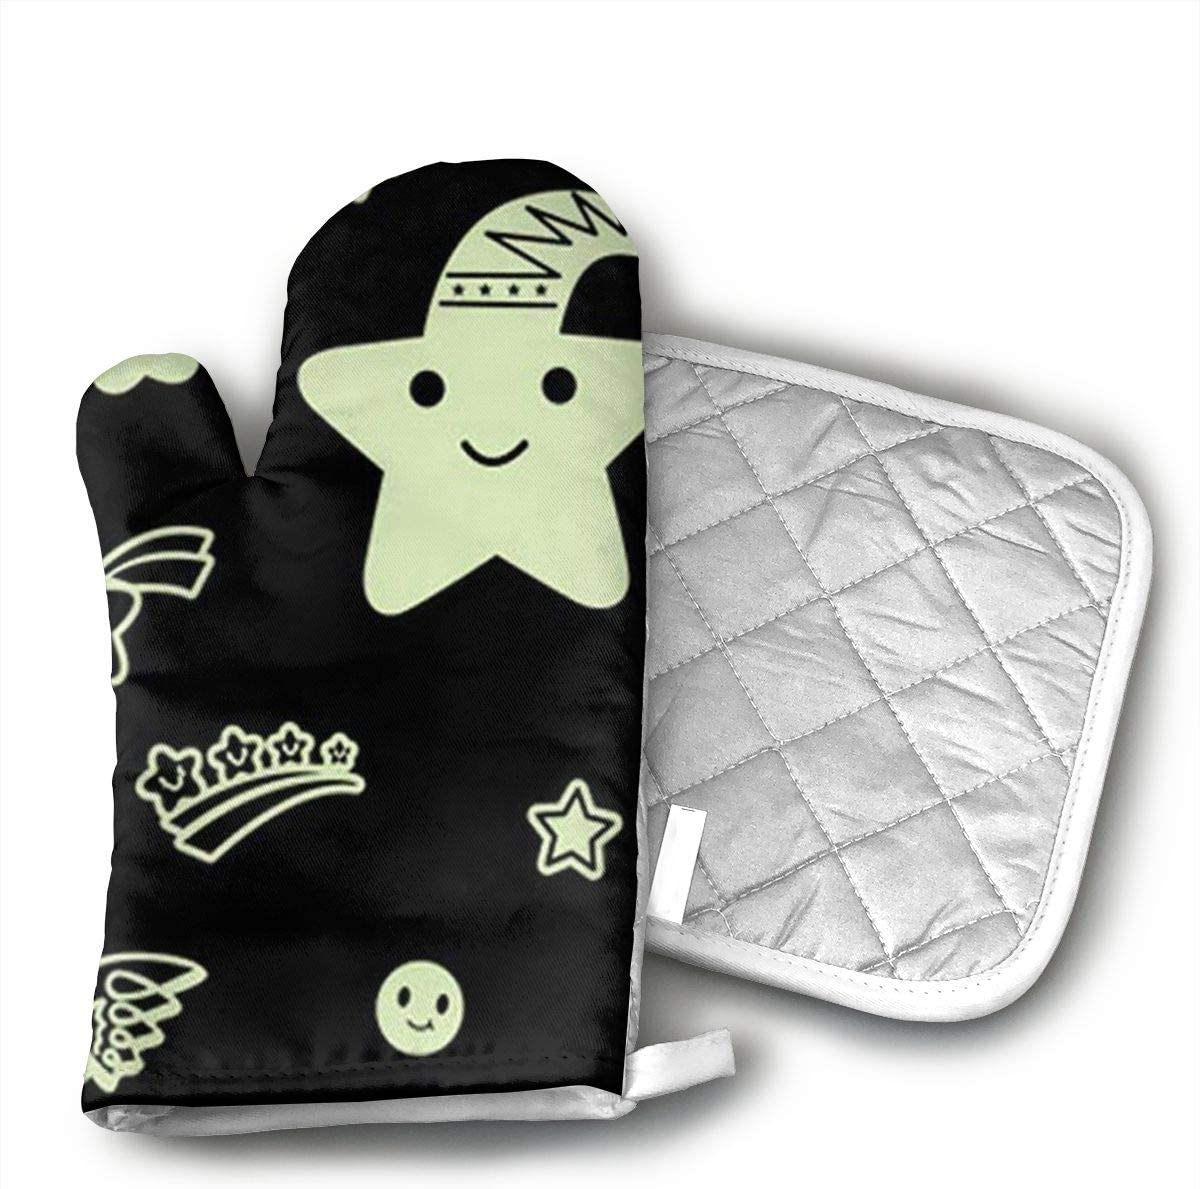 LUENO Glow in The Dark Art Moon Star Oven Mitts Professional Heat Resistance Kitchen Oven Soft Cotton Gloves for Grilling Cooking Microwave BBQ Baking